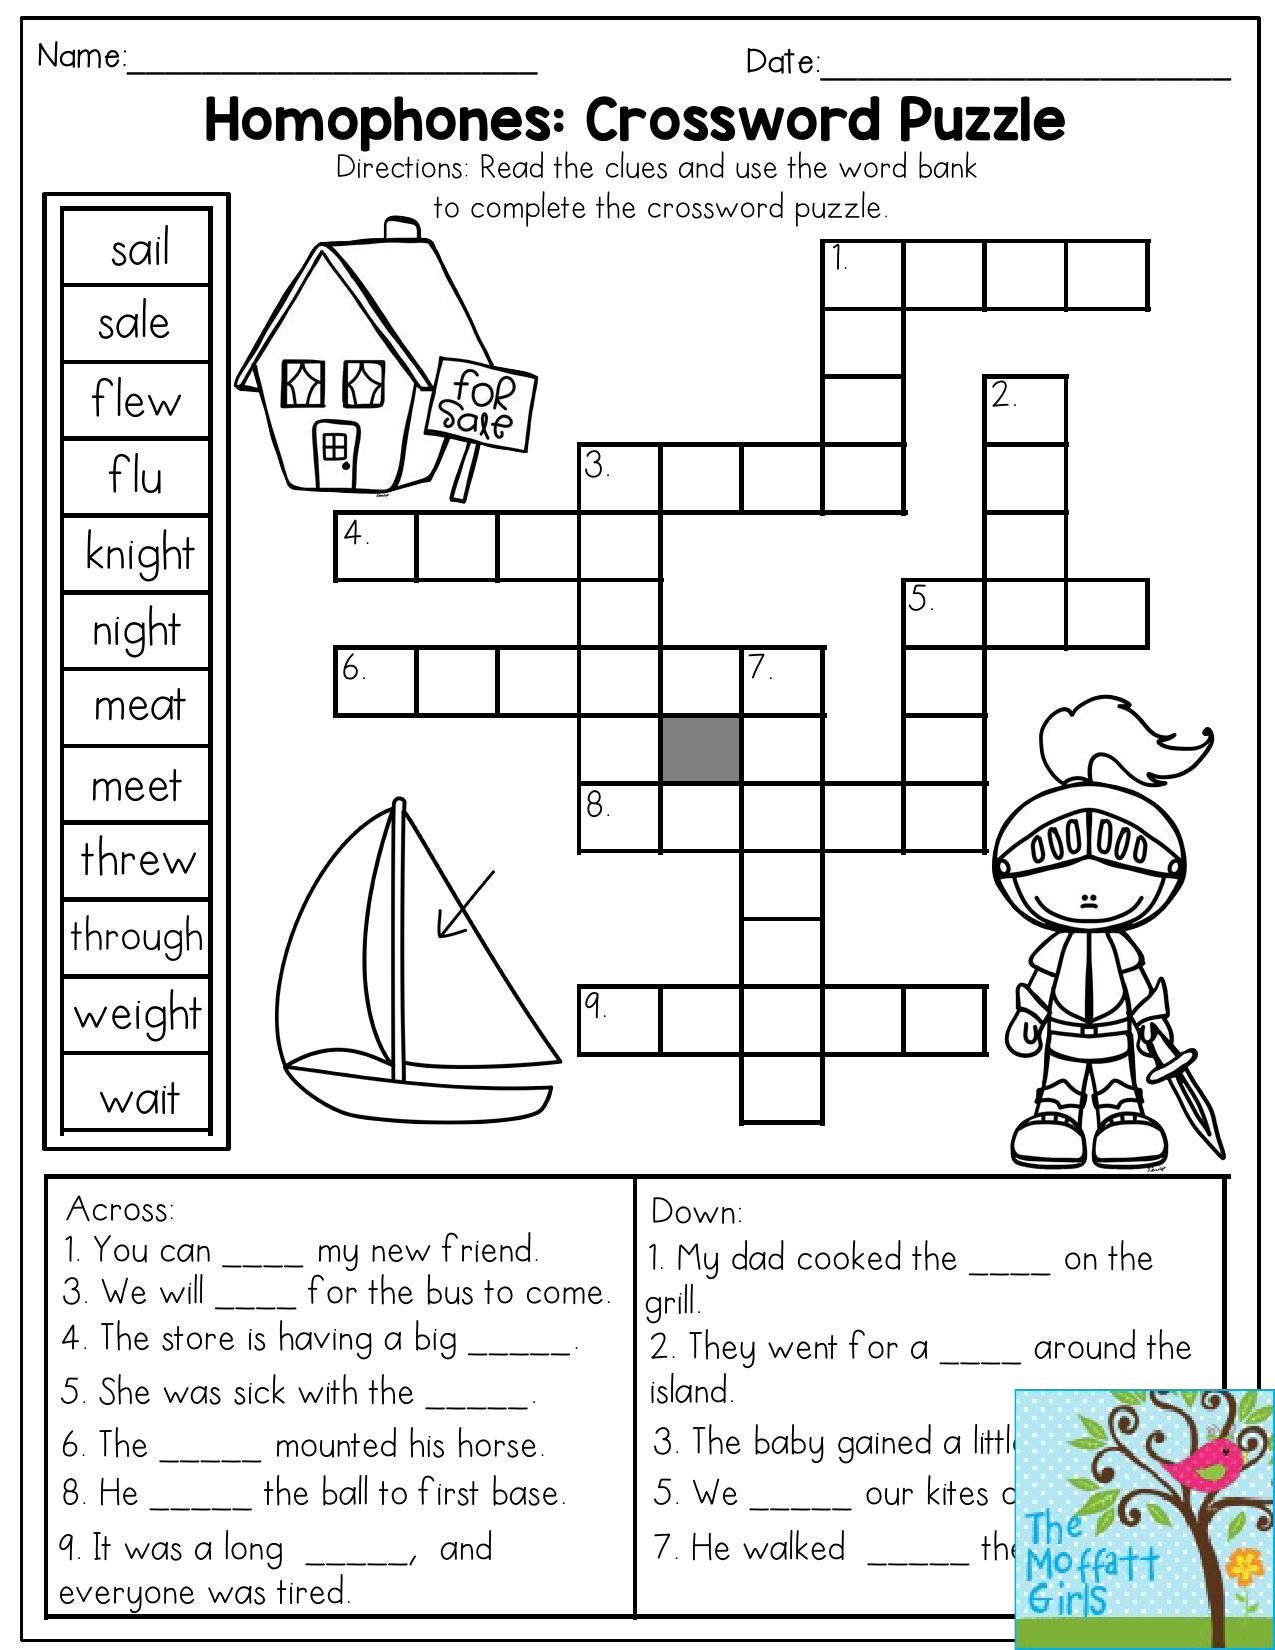 Homophones: Crossword Puzzle- Read The Clues And Use The Word Bank - Printable Crosswords For 1St Grade